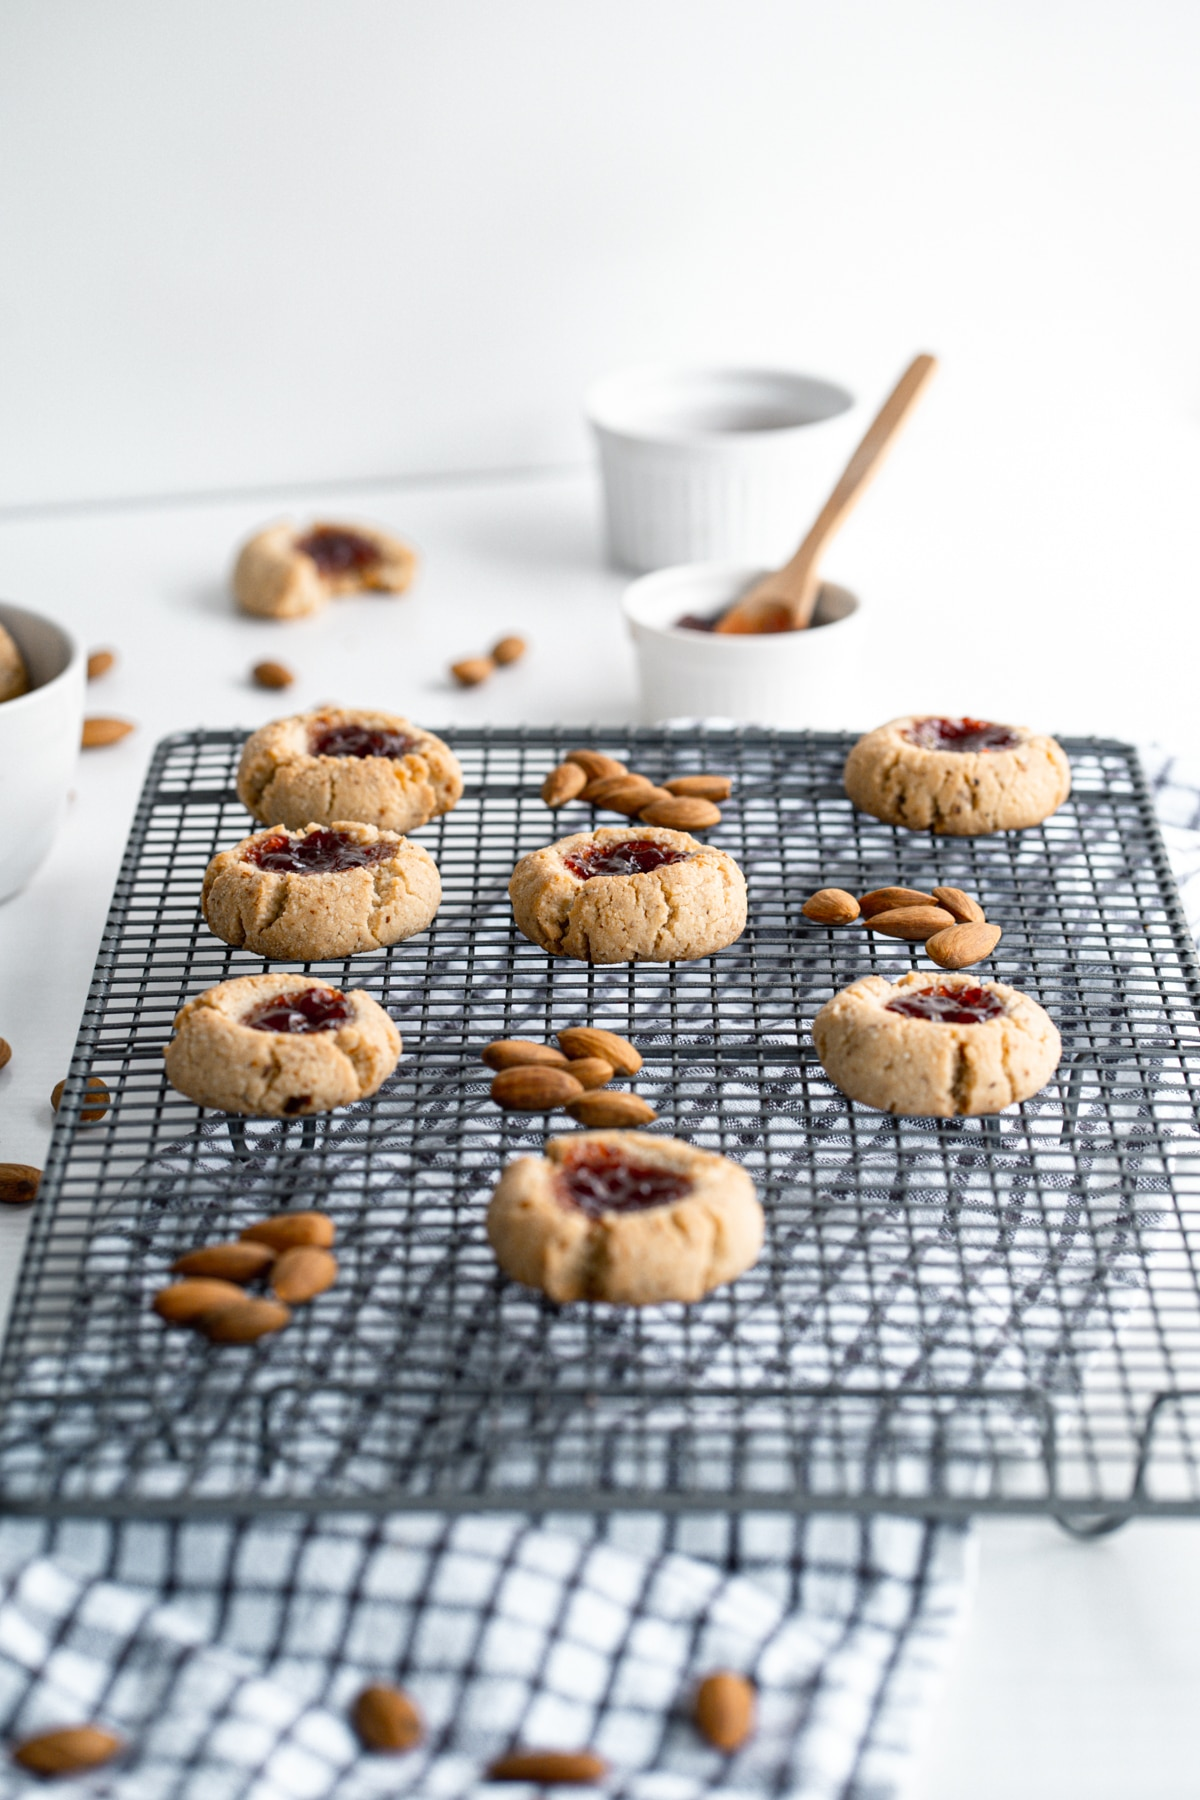 Made with just a five simple ingredients, these Almond Flour Thumbprint Cookies are delicious all year long! They are sugar free, low carb, gluten free and Keto!